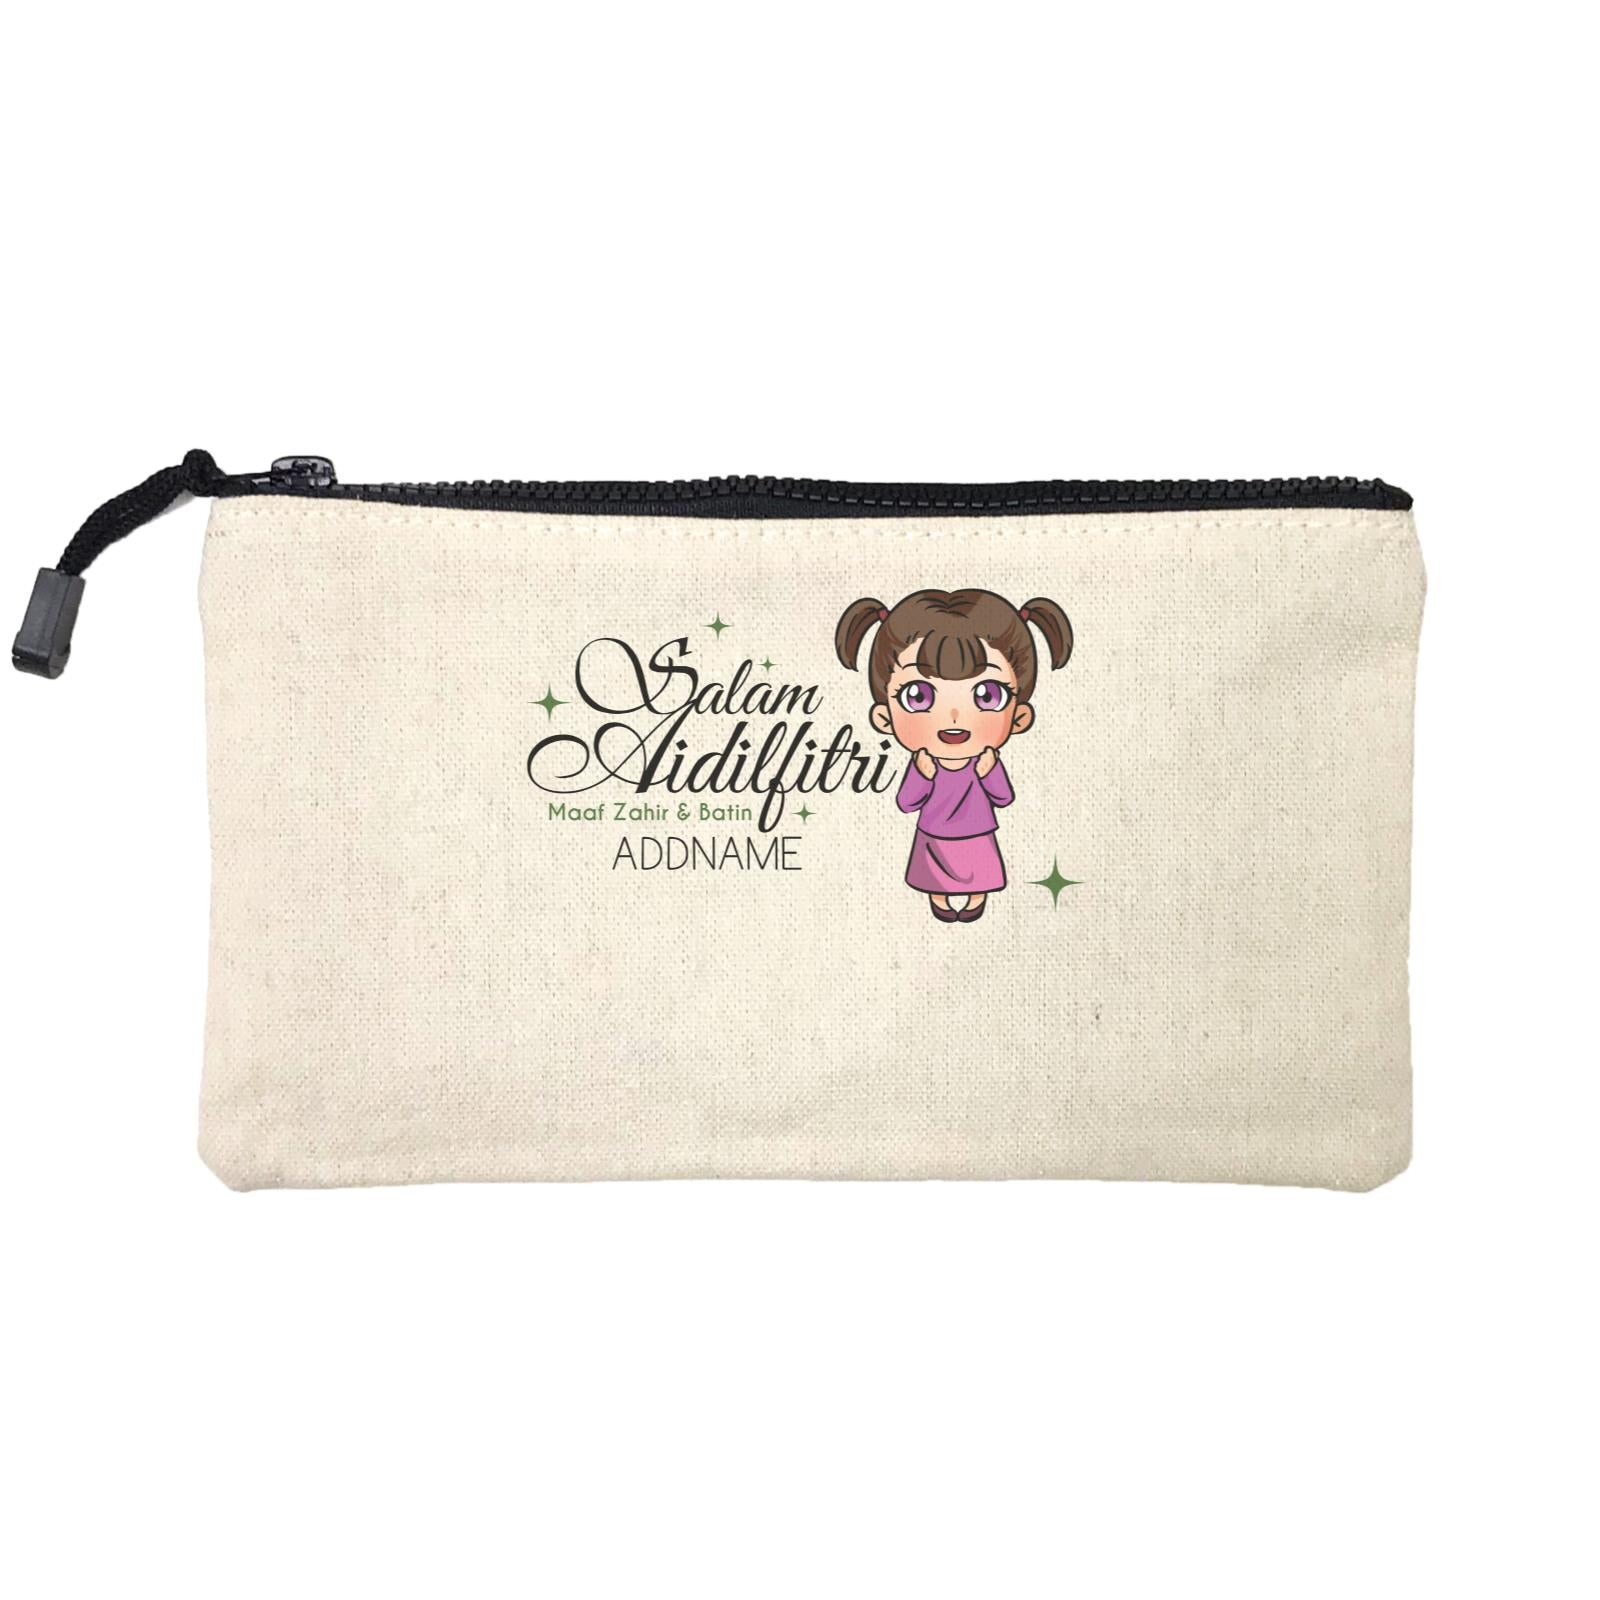 Raya Chibi Wishes Little Girl Addname Wishes Everyone Salam Aidilfitri Maaf Zahir & Batin Mini Accessories Stationery Pouch